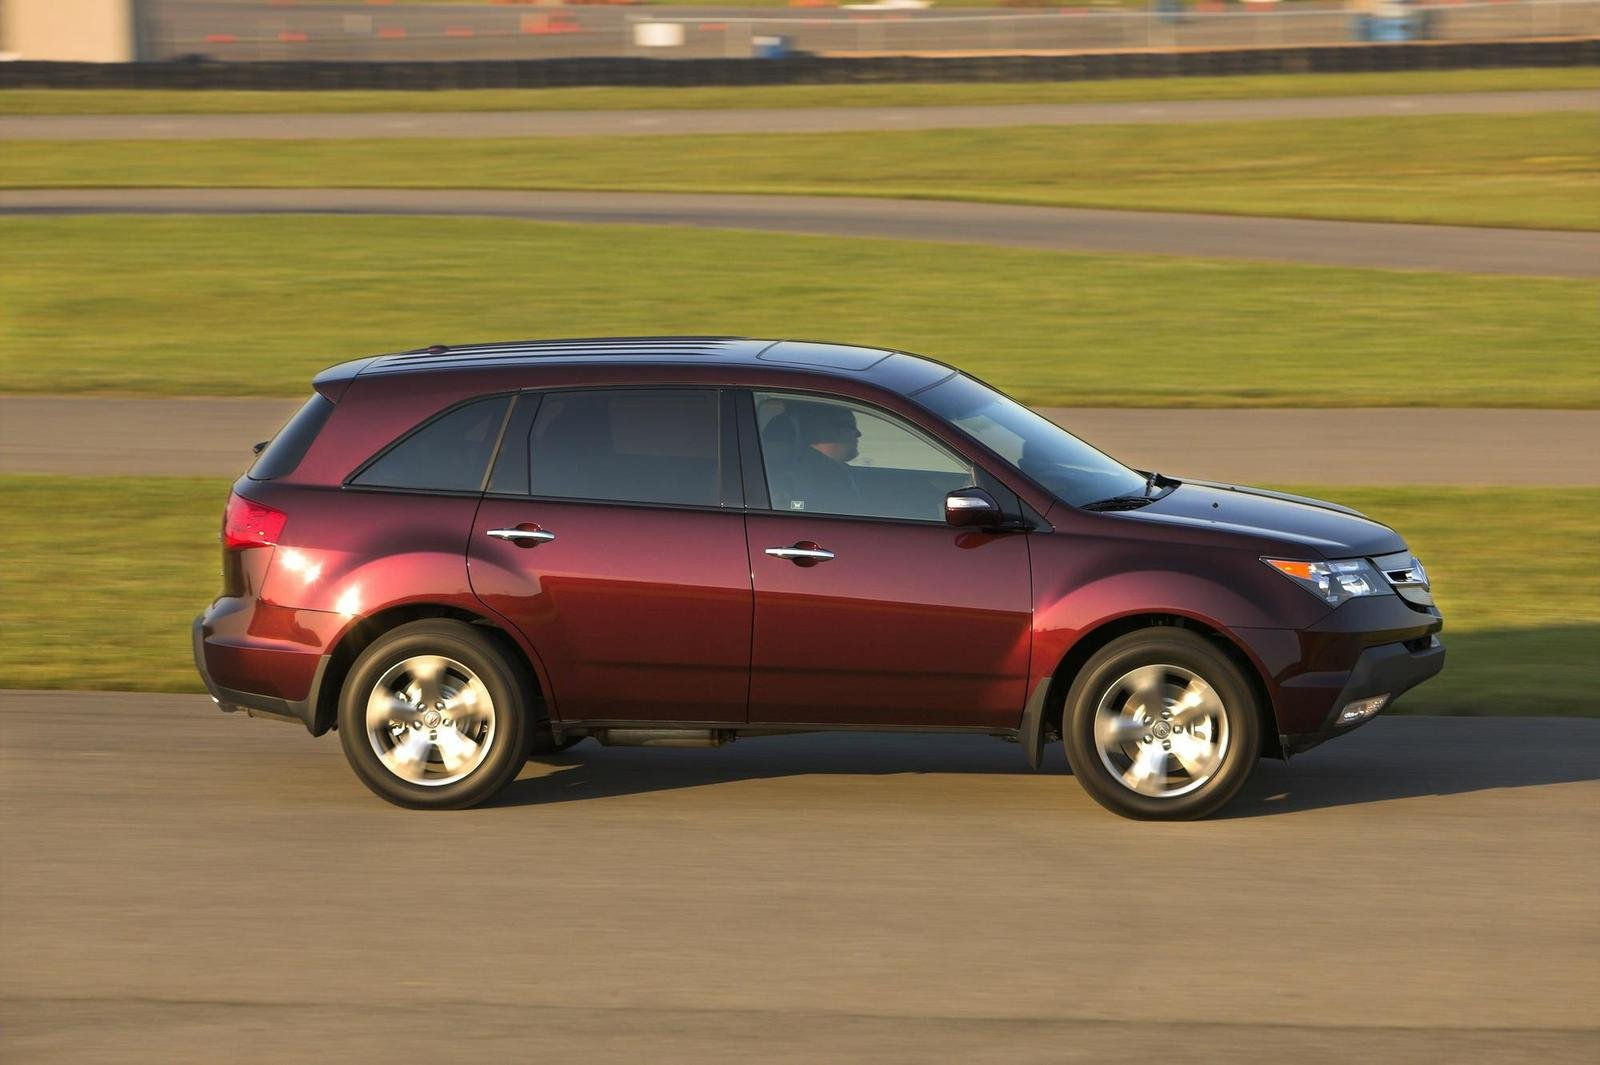 2009 acura mdx picture 299856 car review top speed. Black Bedroom Furniture Sets. Home Design Ideas